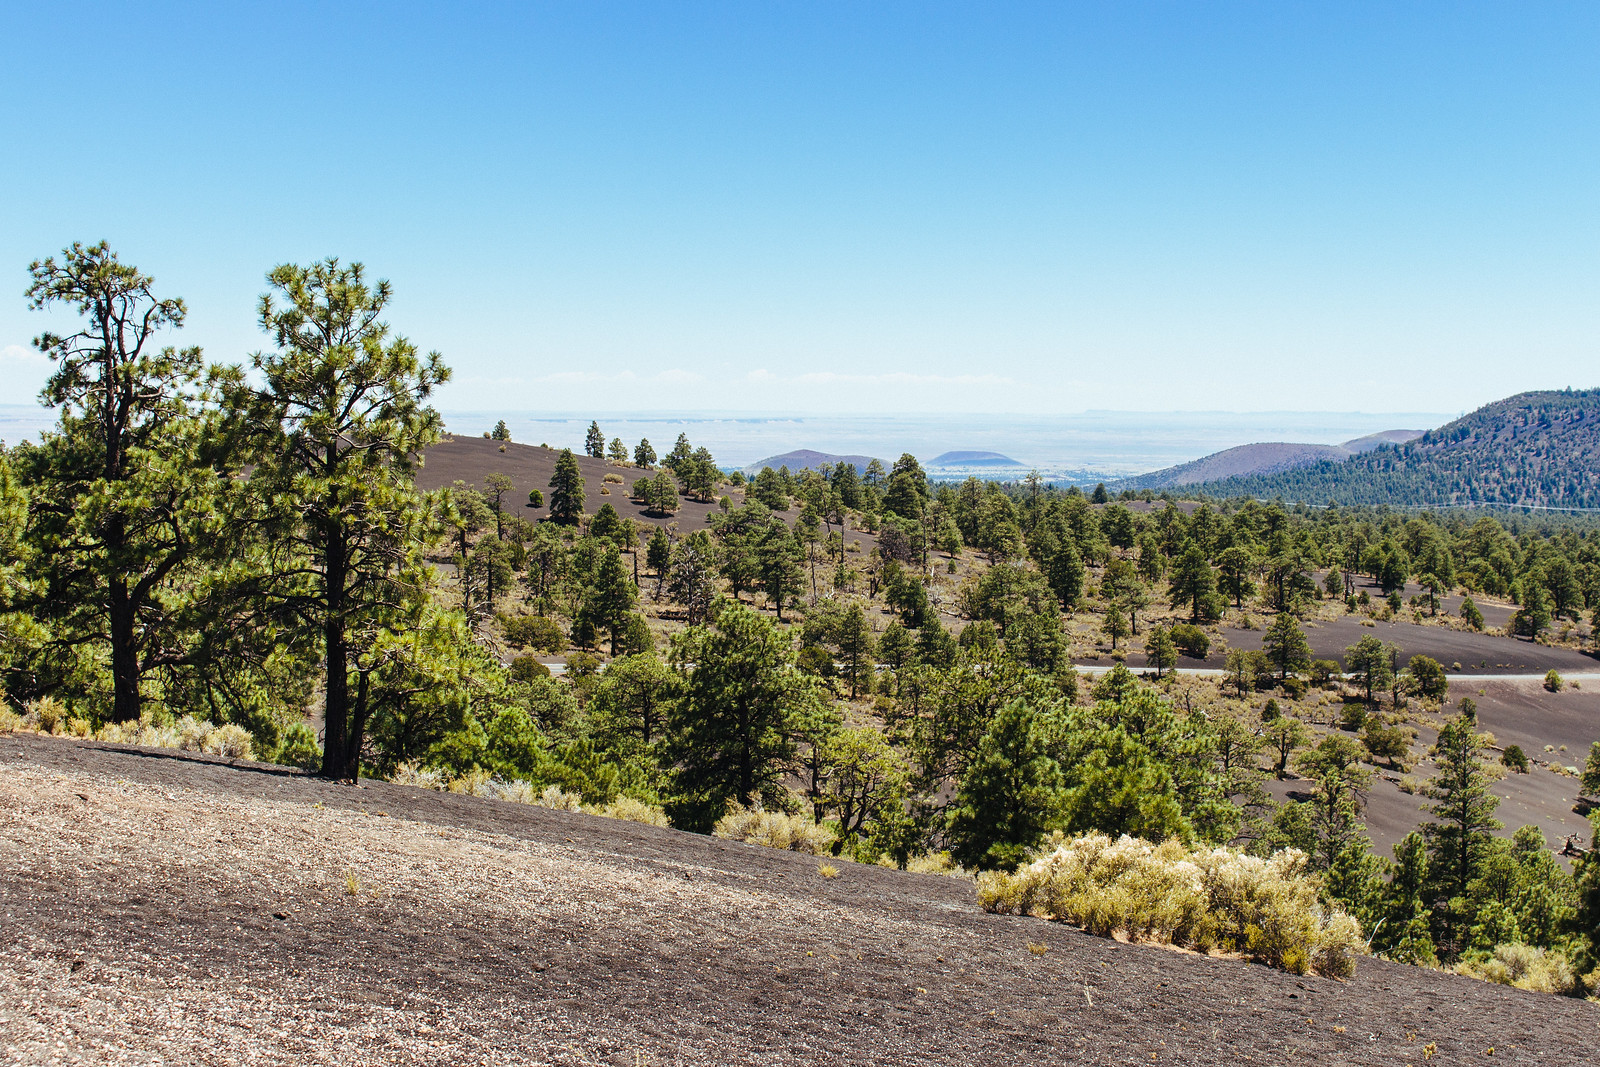 Ponderosa pines grow on cinder cone ash with the desert in the distance